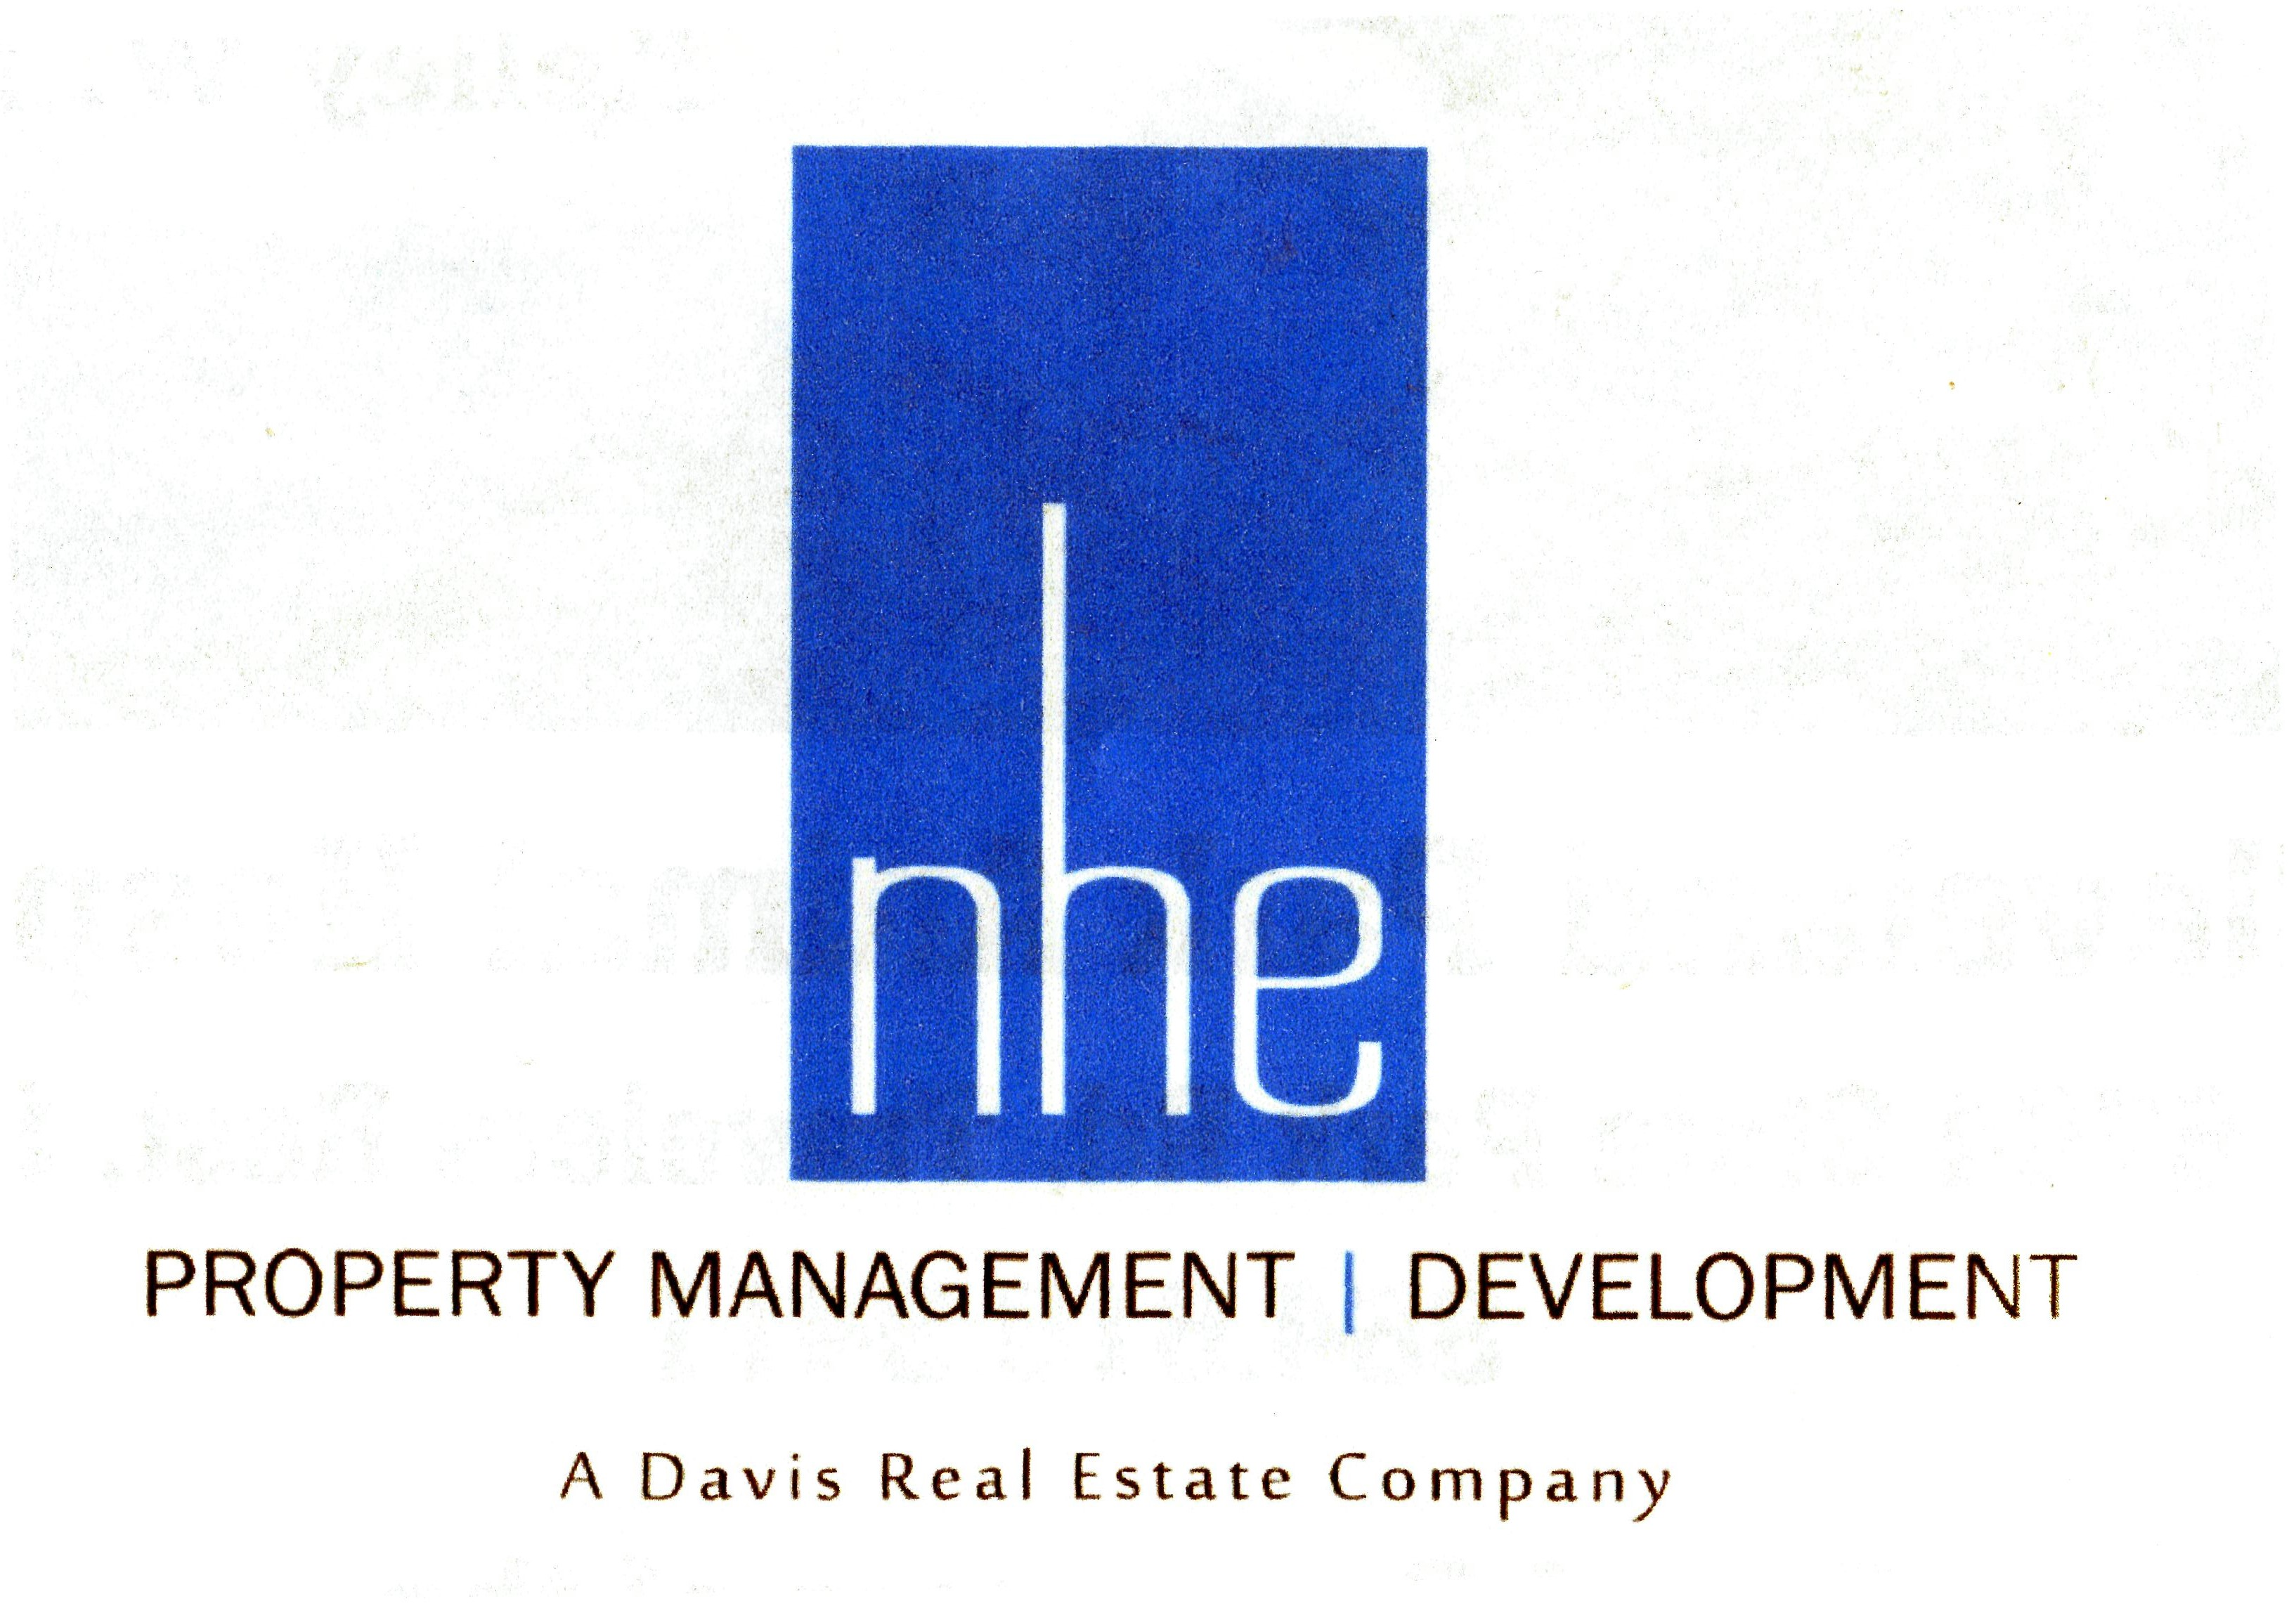 nhe Property Management/Development